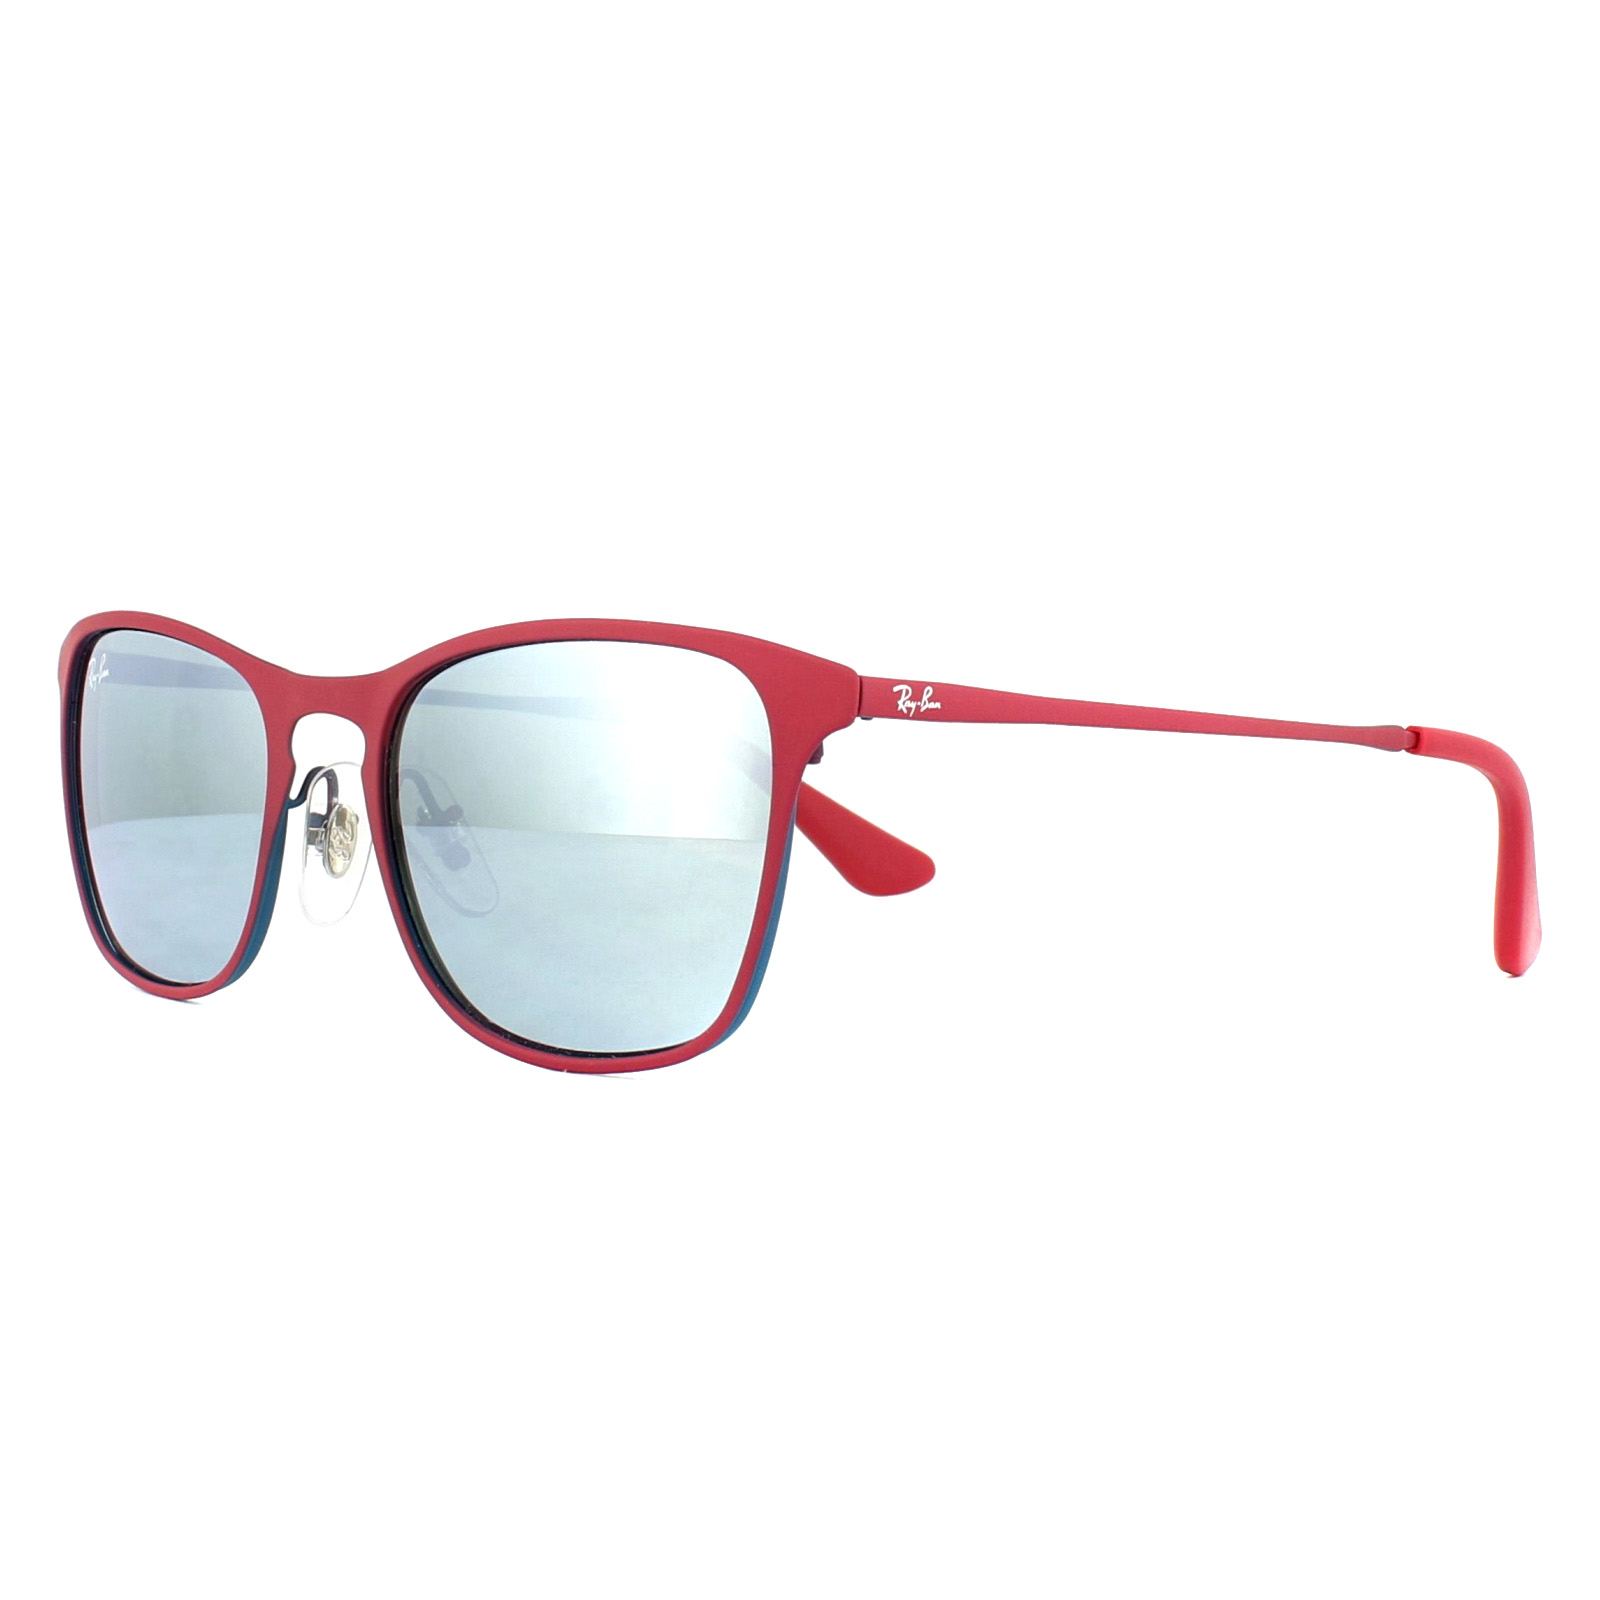 ae5077f7394 Ray-Ban Junior Sunglasses 9539S 256 30 Purple Red Silver Mirror